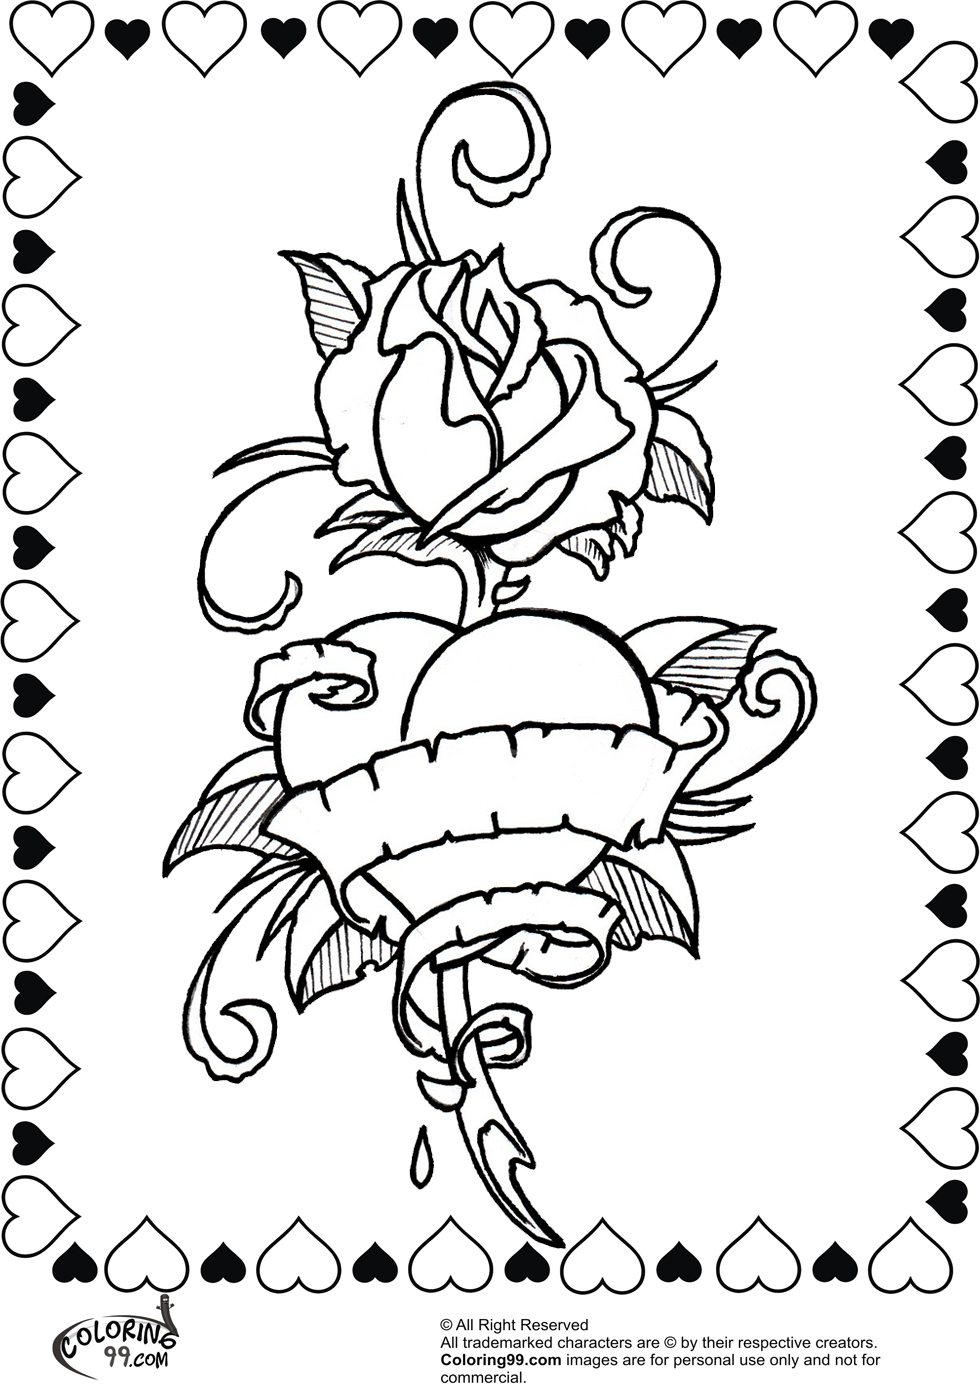 coloring pages of roses and hearts - rose valentine heart coloring pages team colors